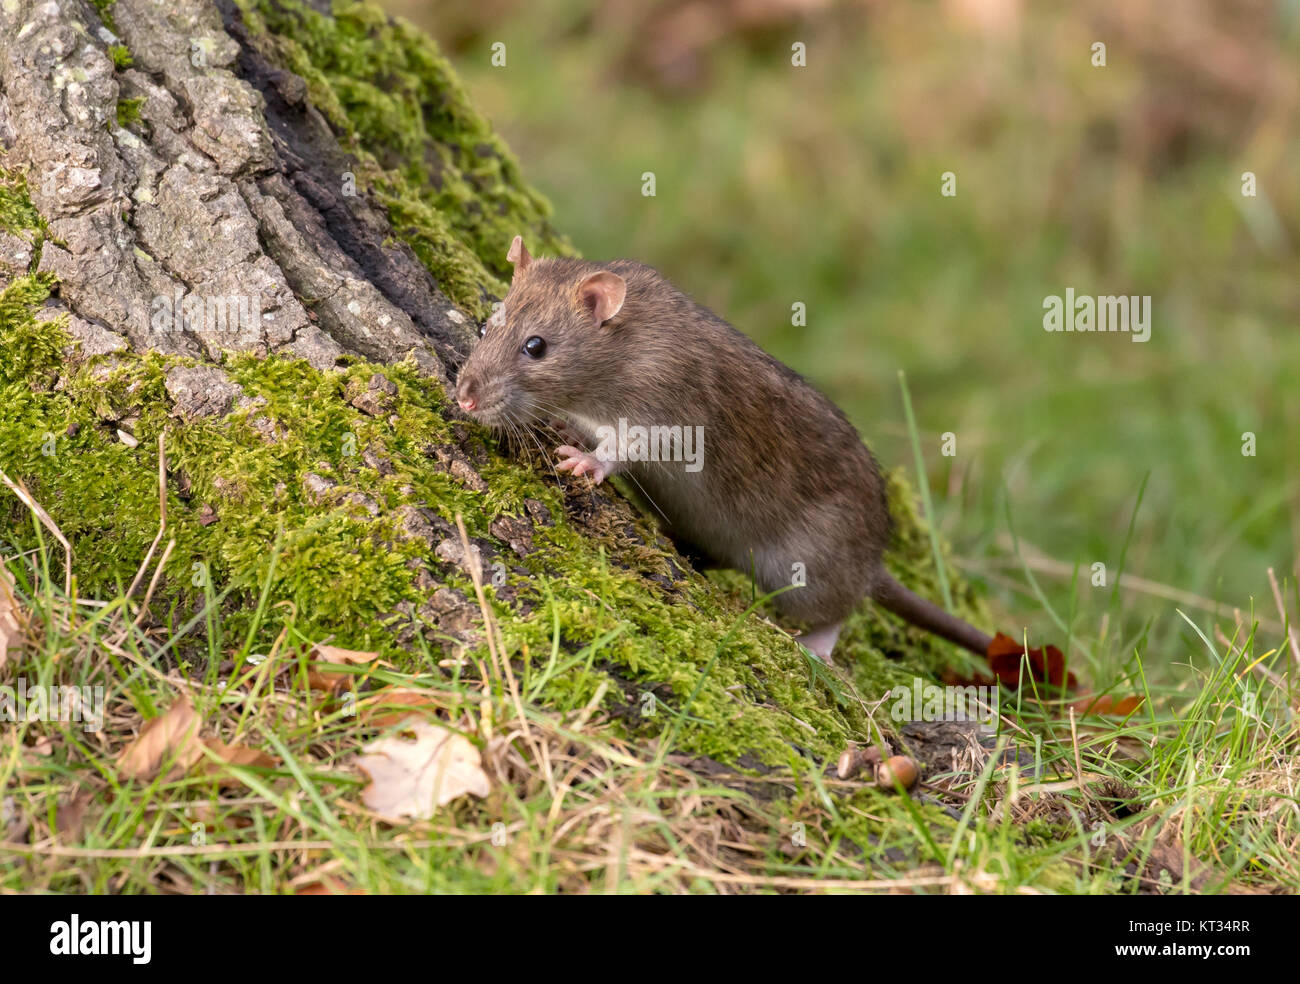 Wild Brown Rat, UK - Stock Image